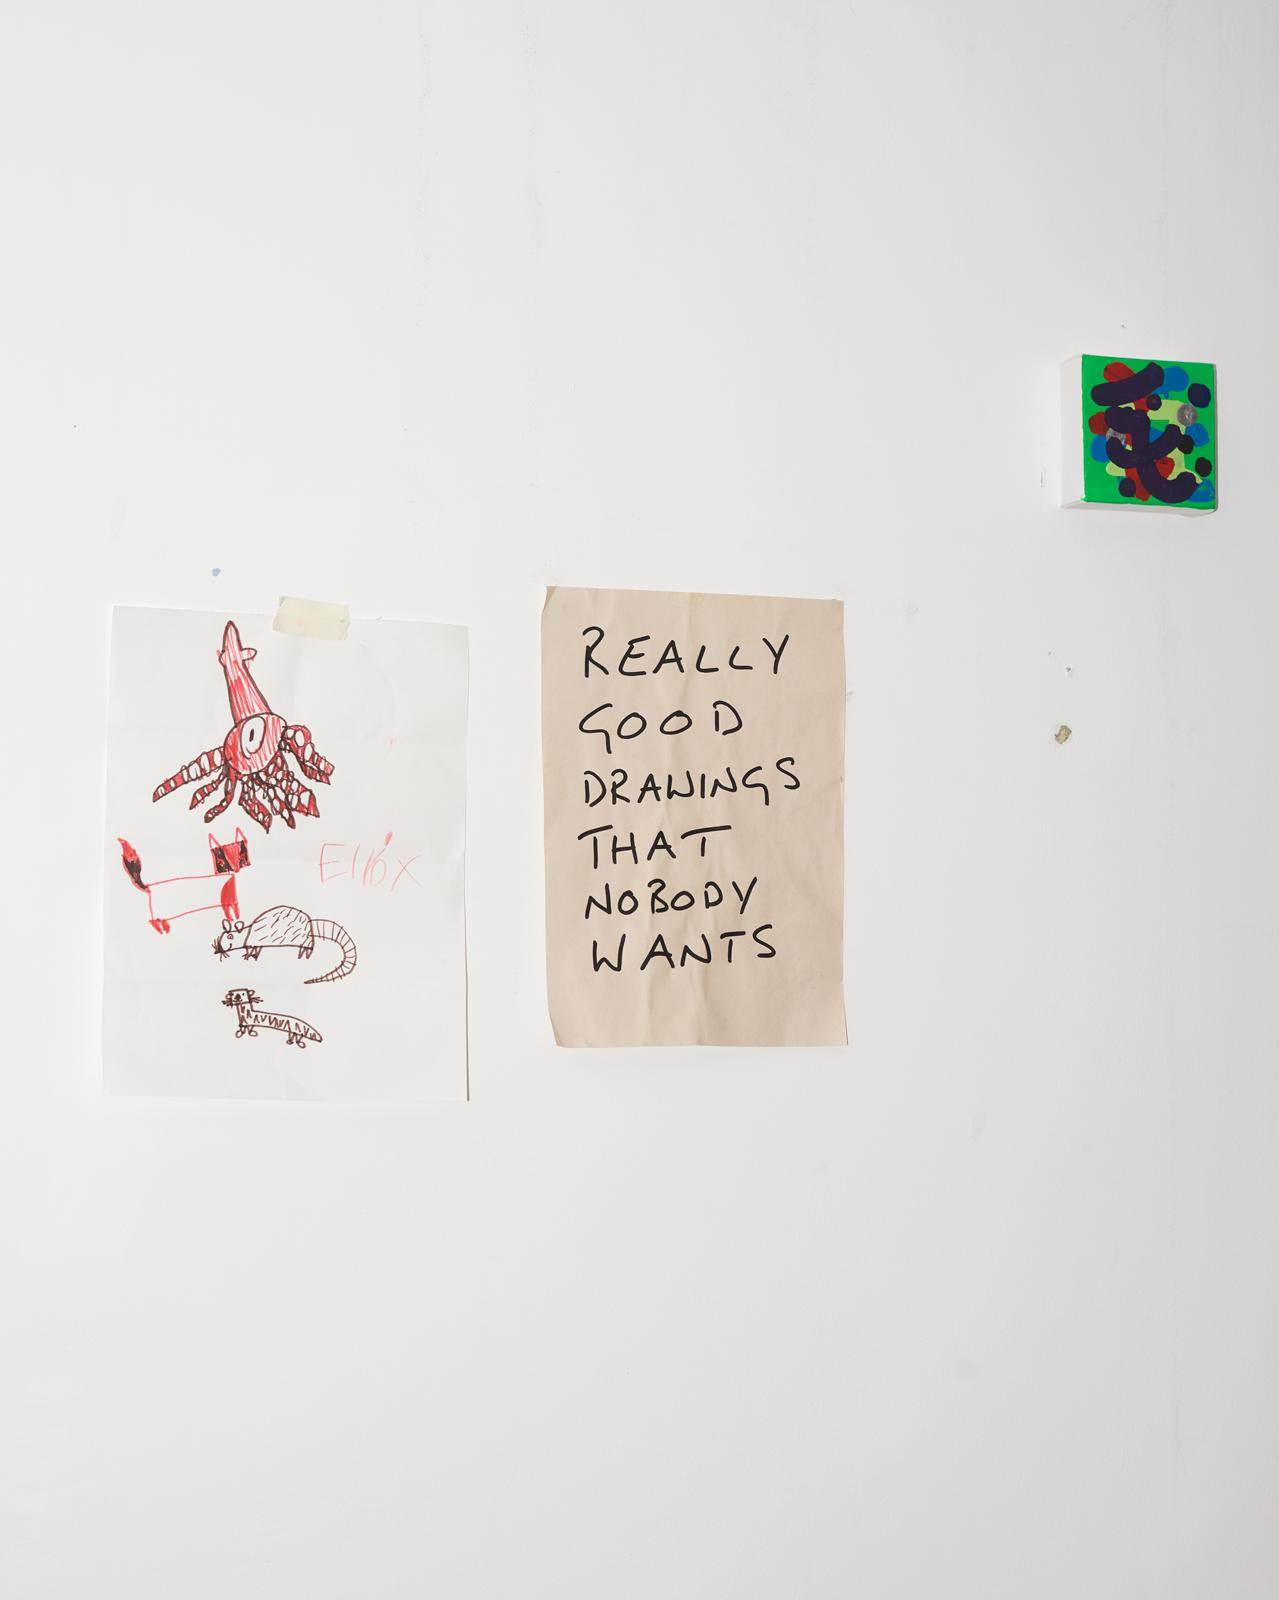 Works on the wall of David Shrigley's Brighton studio